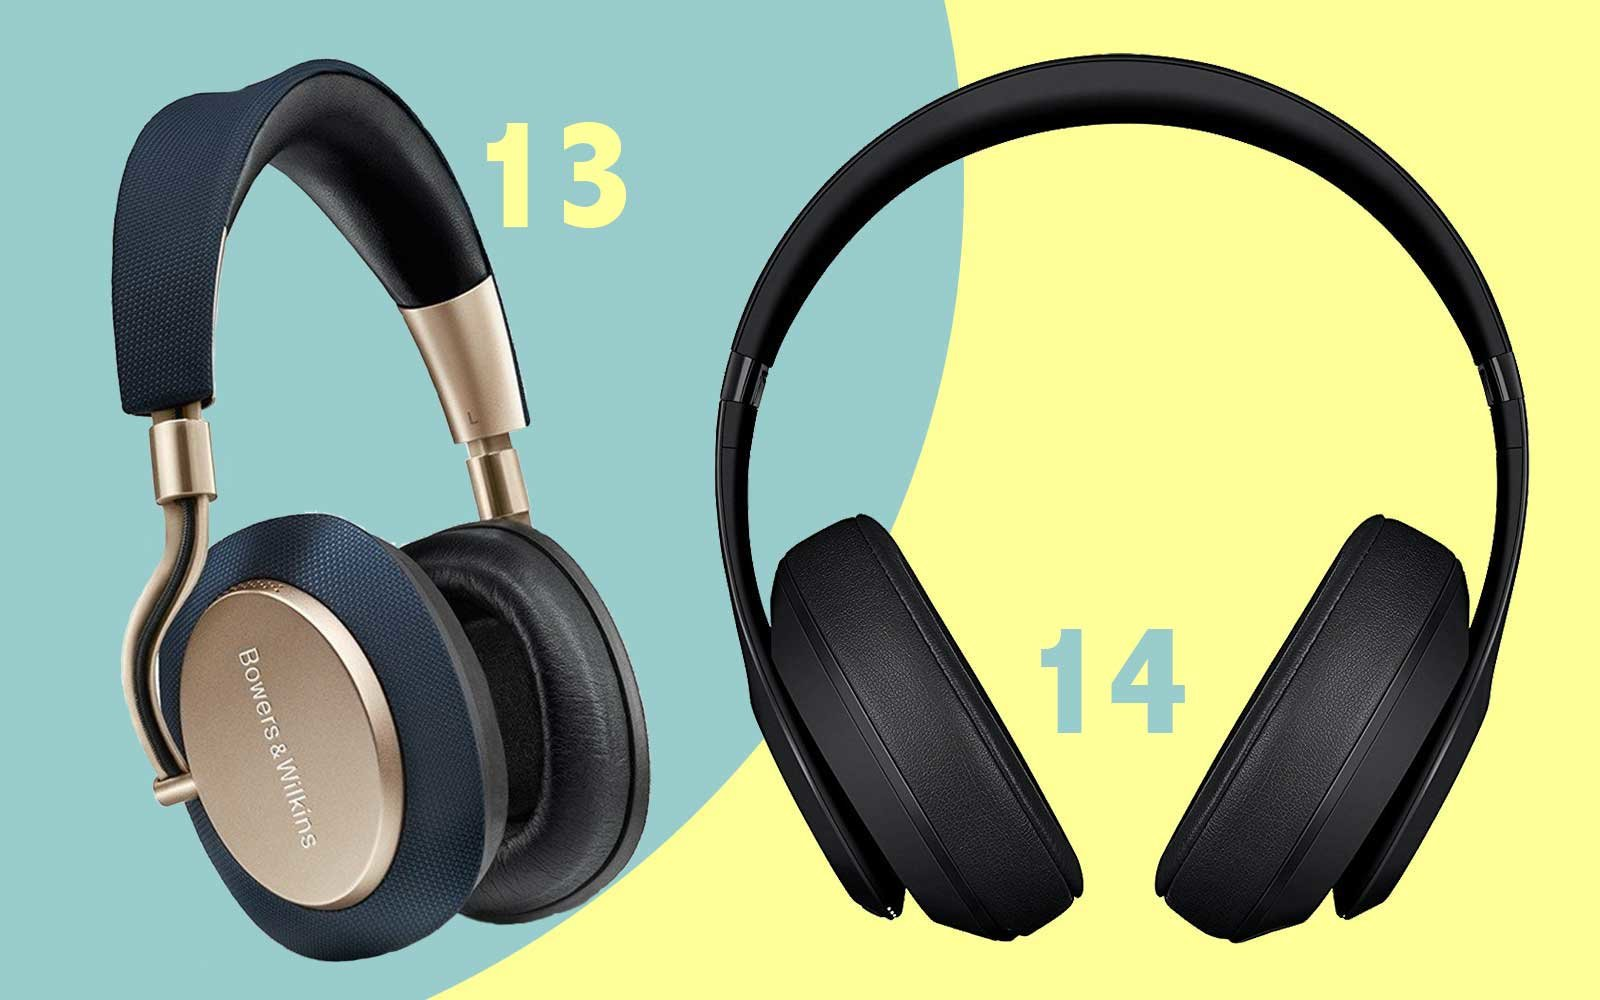 d95e4f461da The Best Noise-cancelling Headphones for Travel | Travel + Leisure